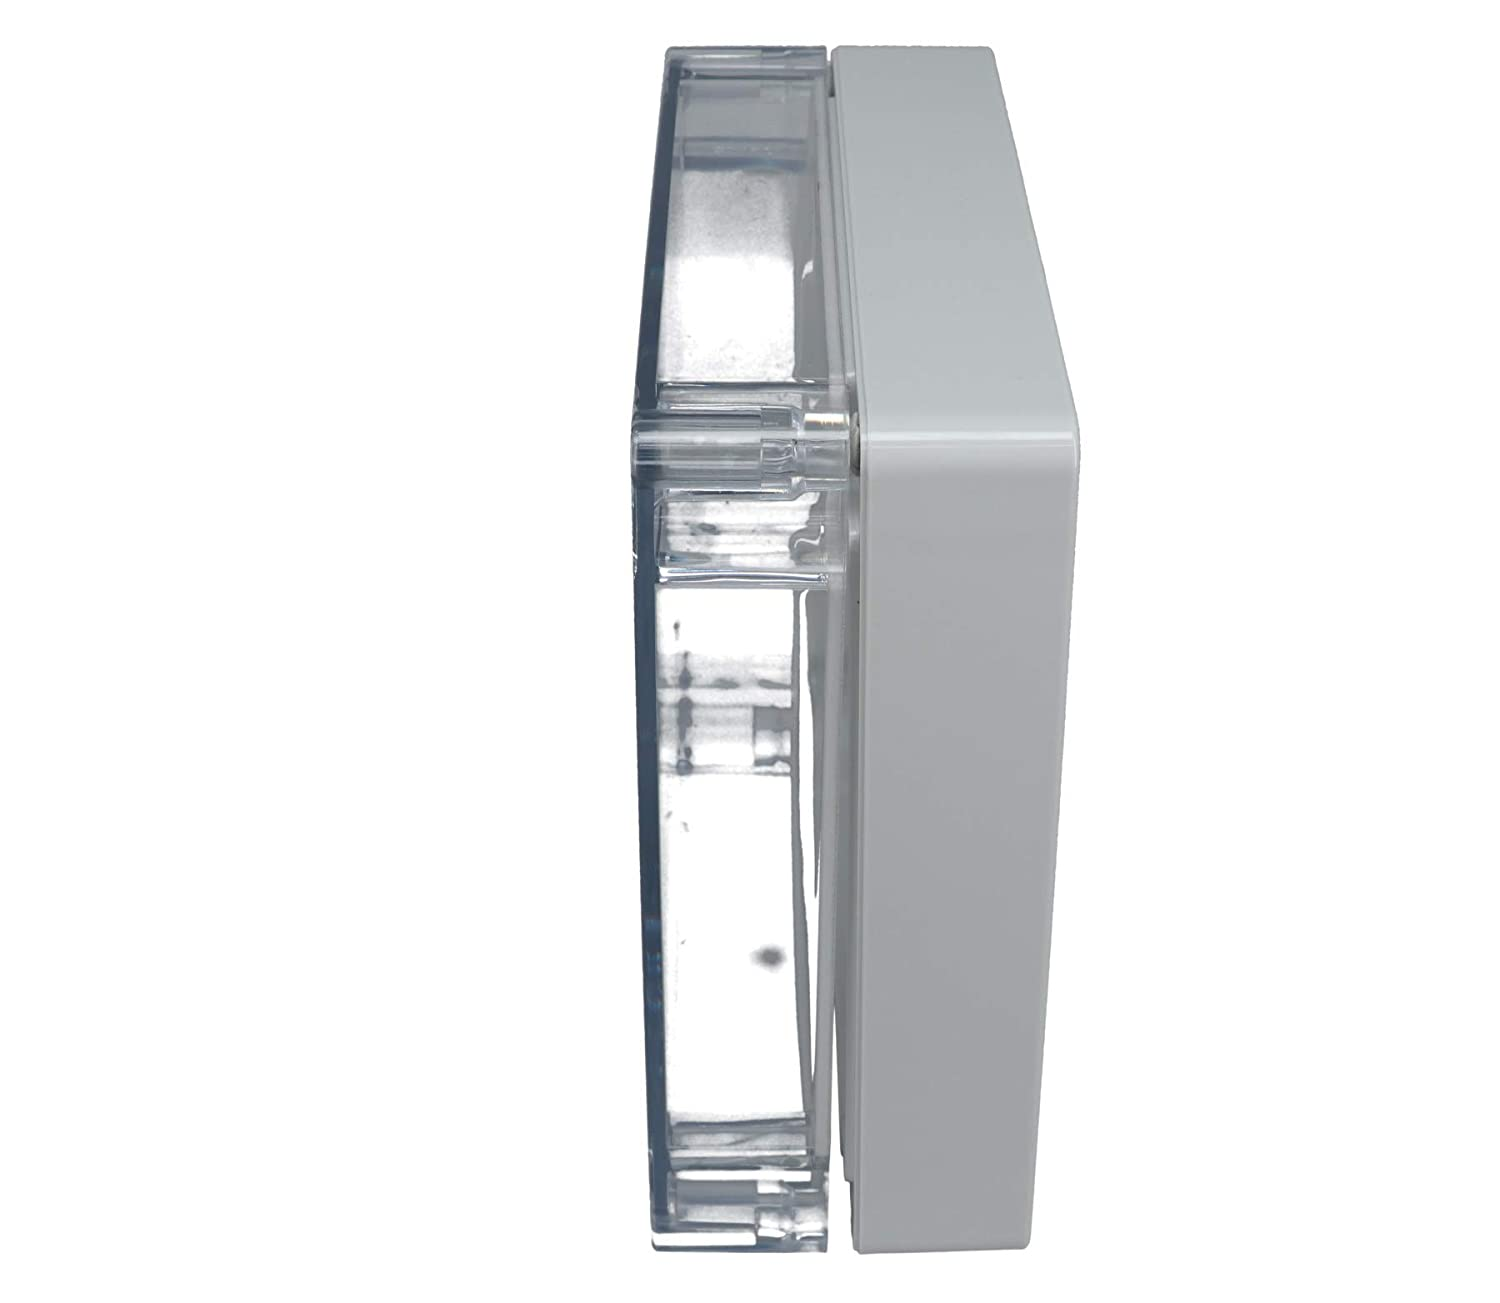 Light Gray Finish BUD Industries PN-1338-C Polycarbonate NEMA 4X Box with Clear Cover 6-19//64 Length x 6-19//64 Width x 2-23//64 Height